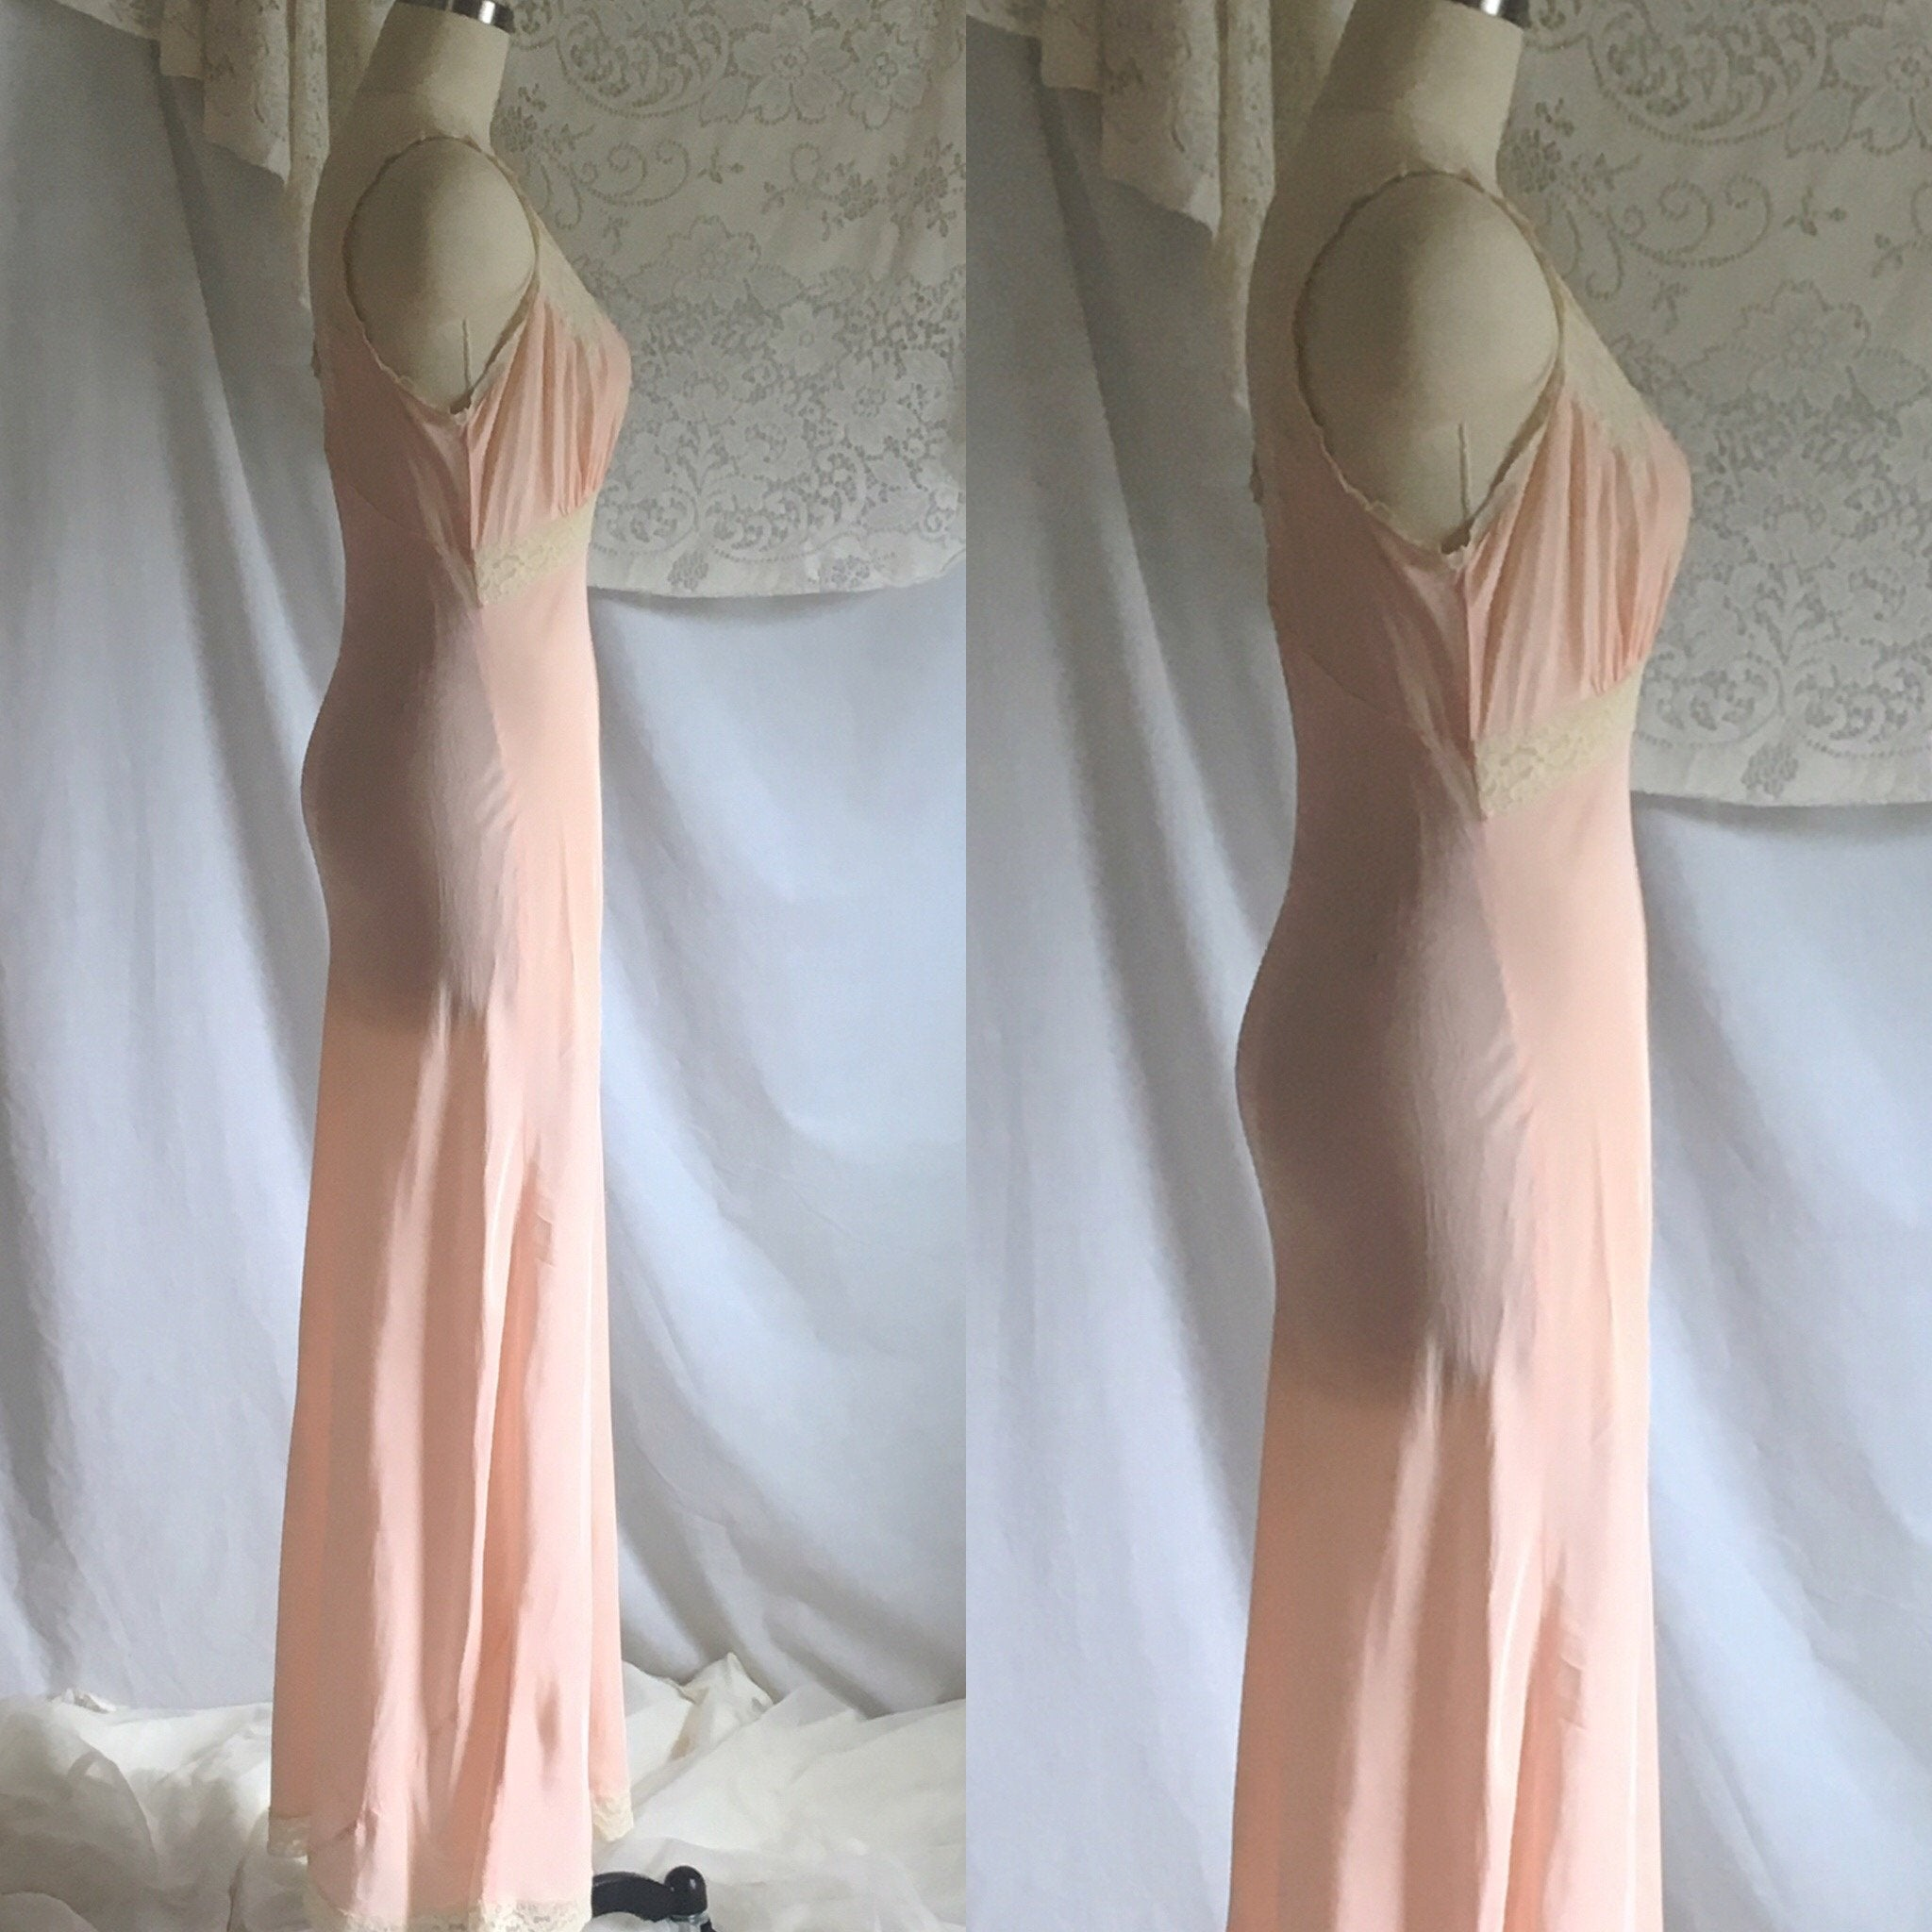 Vintage 1940's Nightgown | Pale Pink Rayon with Lace & Bias Cut | Size S, M